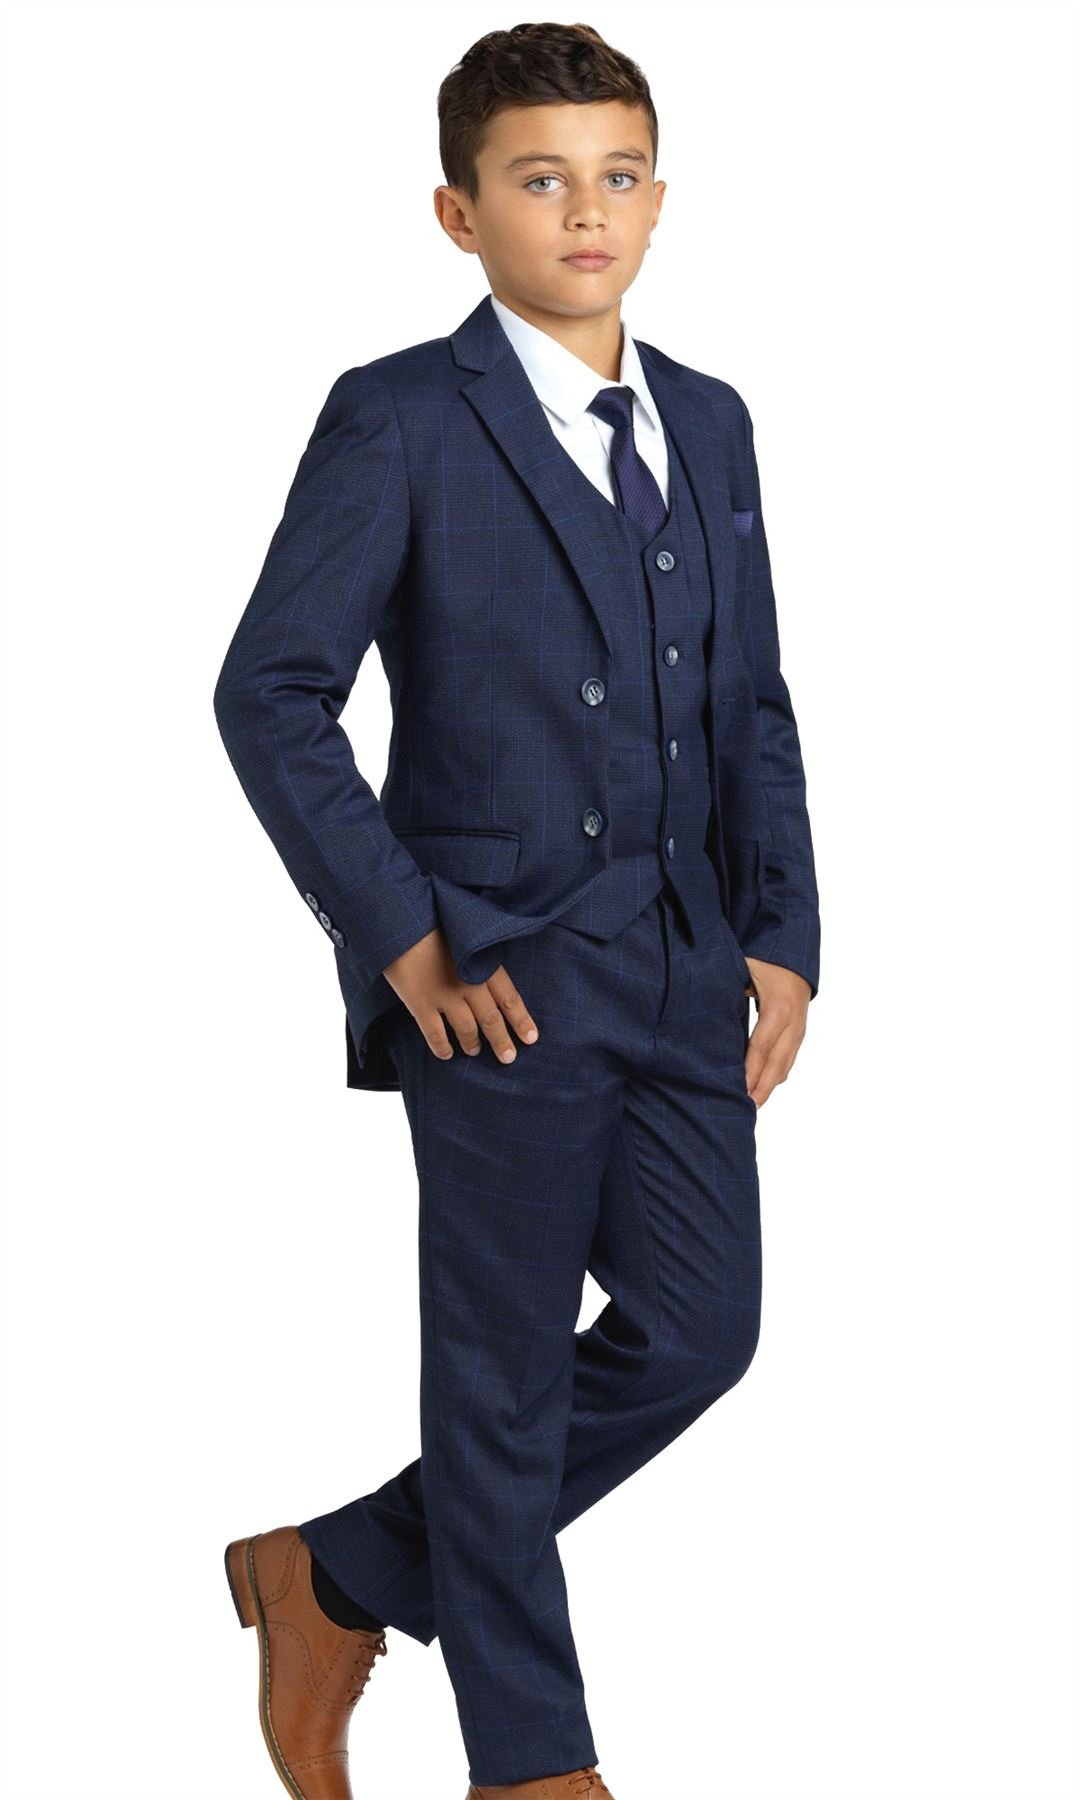 Paisley of London, Henry Navy Check Occasion Wear, Boys Navy Wedding Slim Fit Suit with Shirt and Vest, X-Large